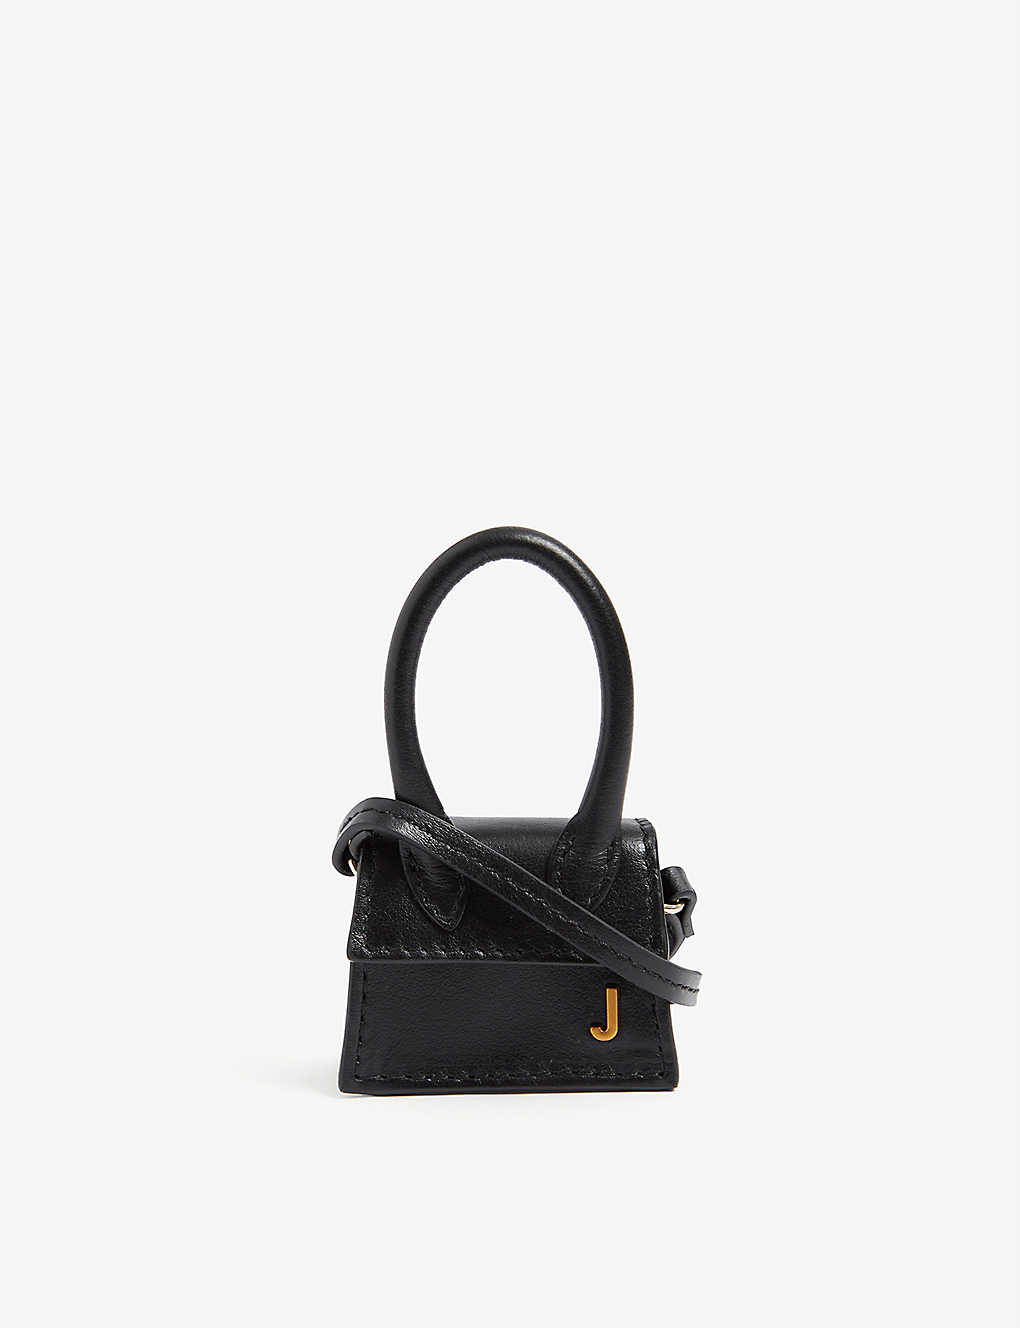 Jacquemus LE PETIT CHIQUITO MINI LEATHER BAG